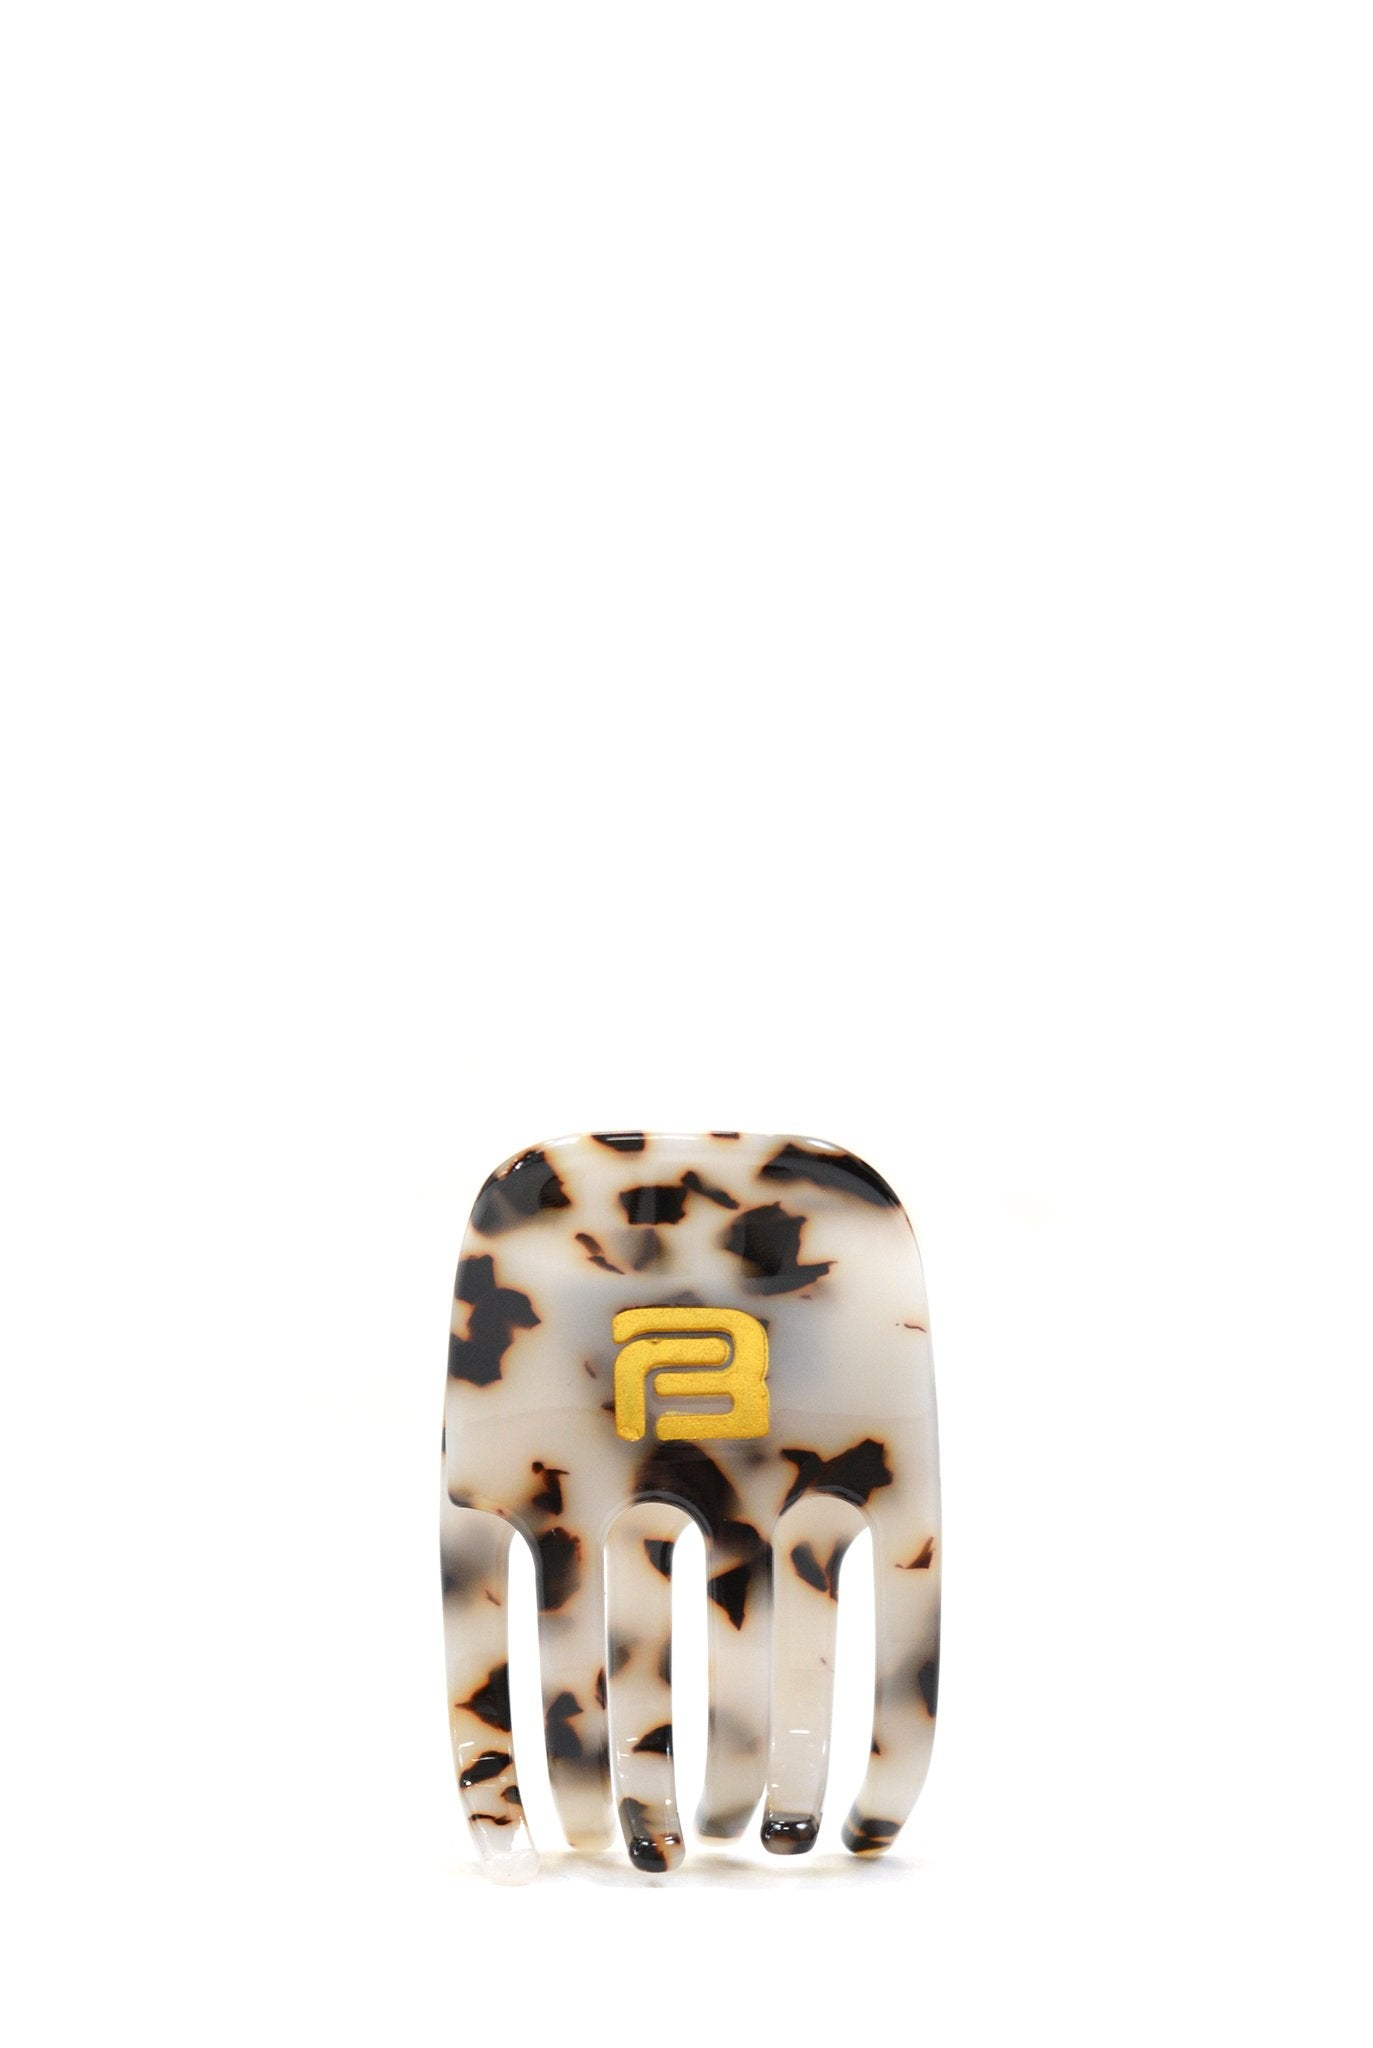 Barragán Monogram Hair Clip, Cream Marble